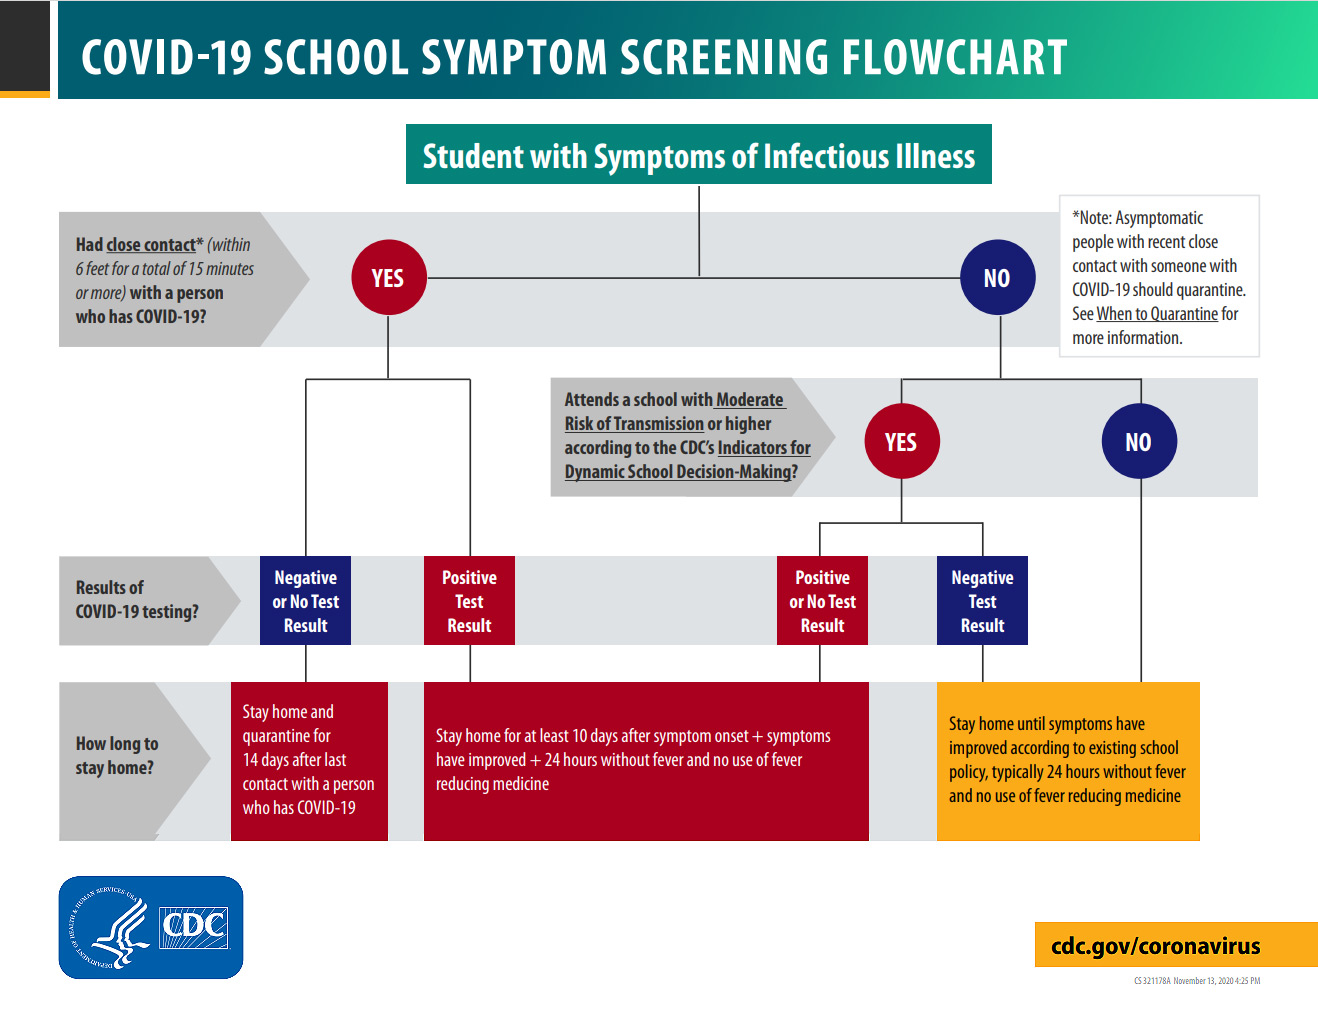 COVID-19 School Symptom Screening Flowchart